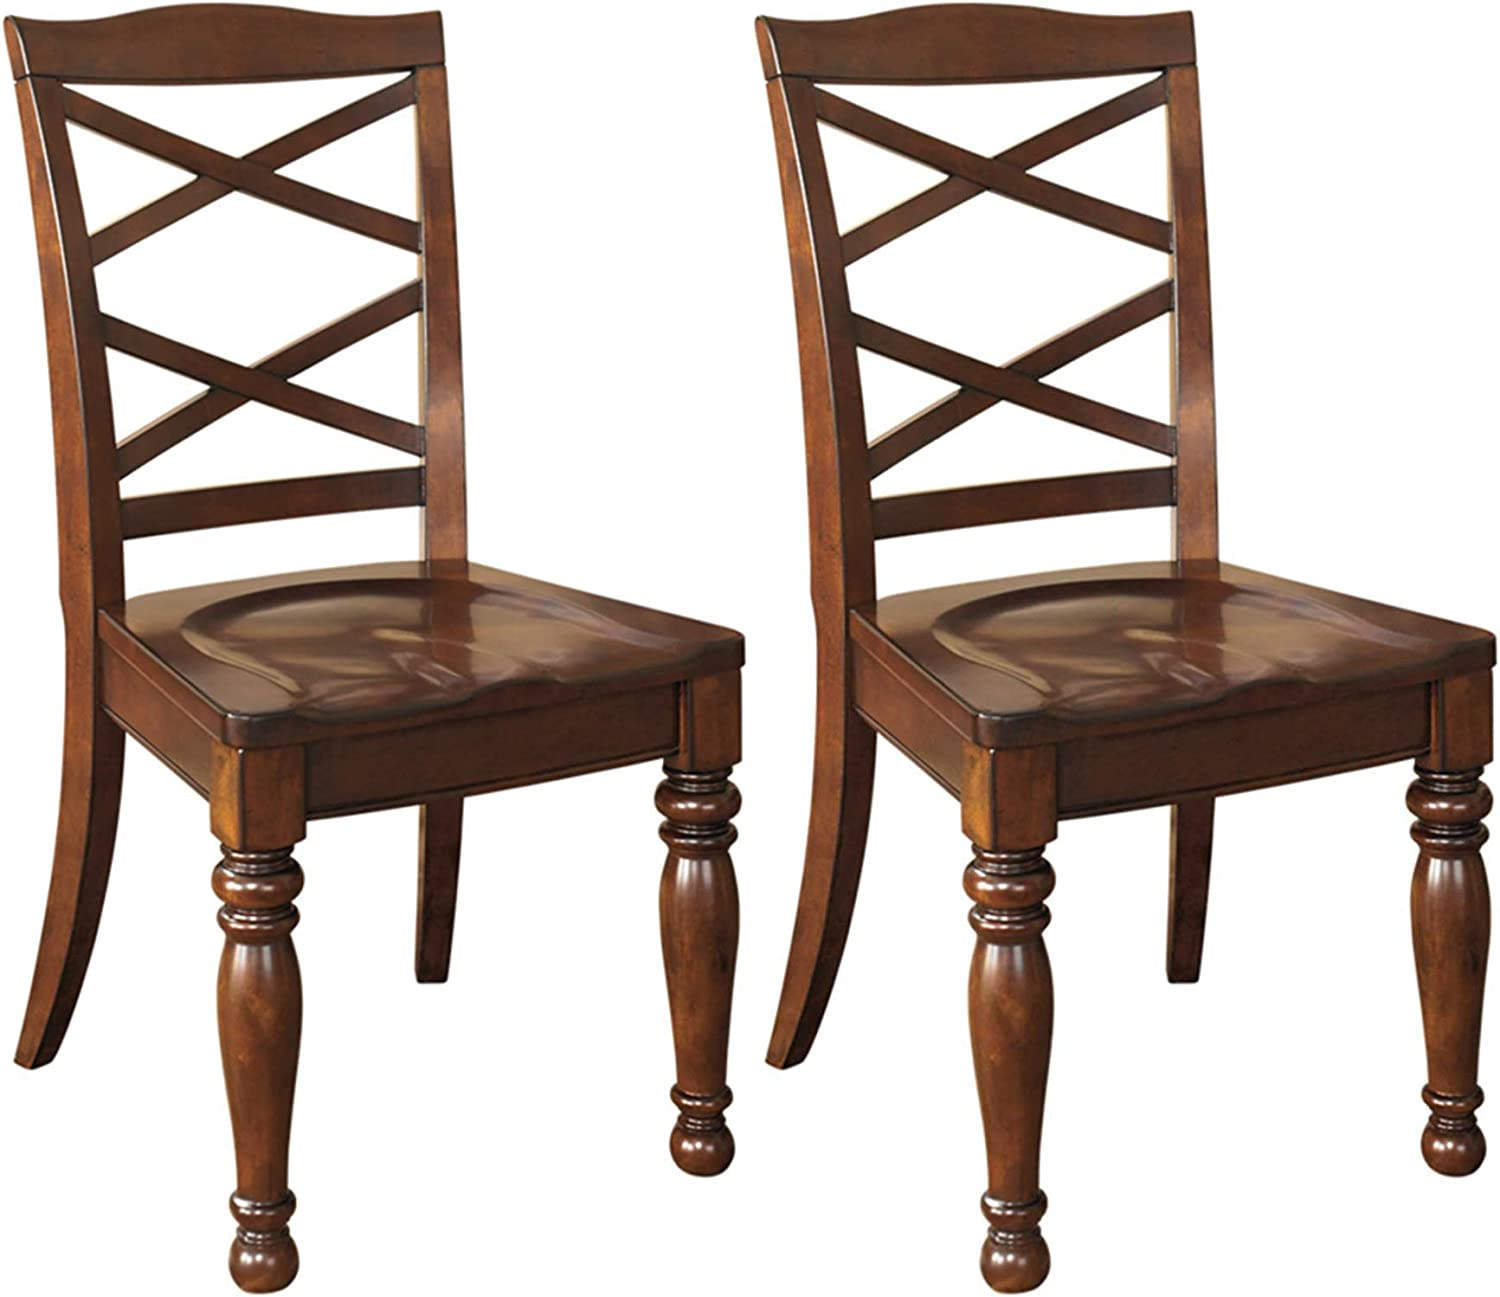 Signature Design by Ashley D697-01 Porter Dining Chair, Rustic Brown